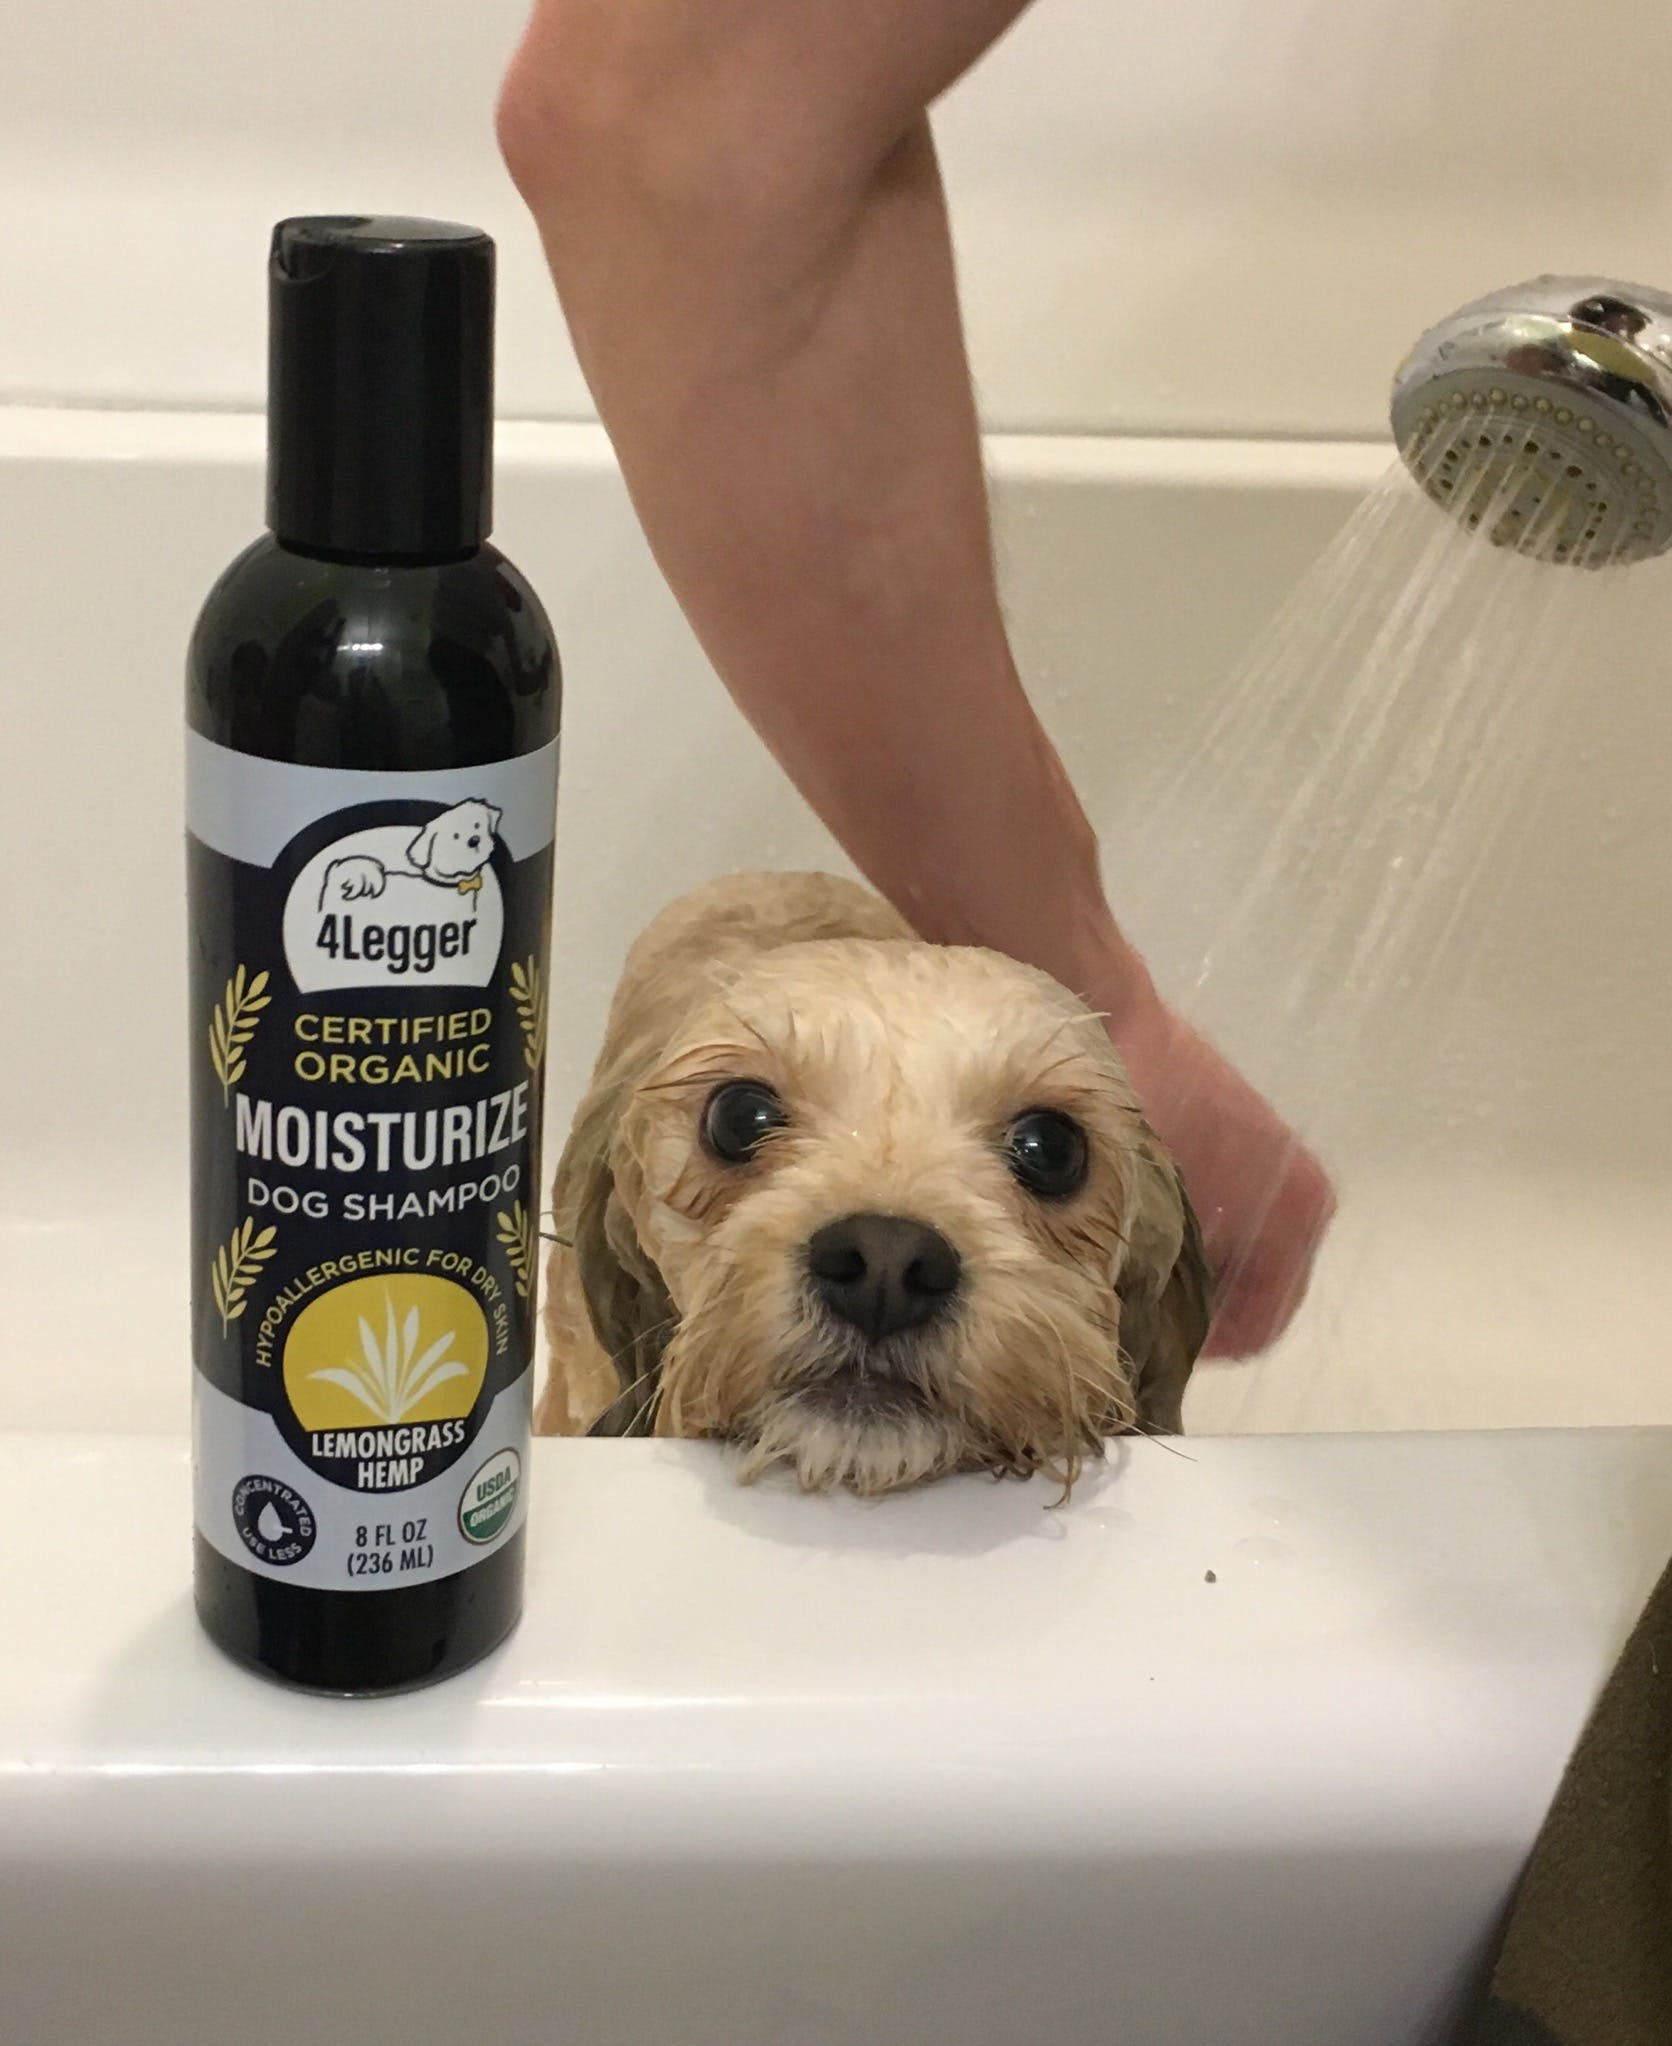 MOISTURIZE - USDA Certified Organic Dog Shampoo with Lemongrass and Hemp